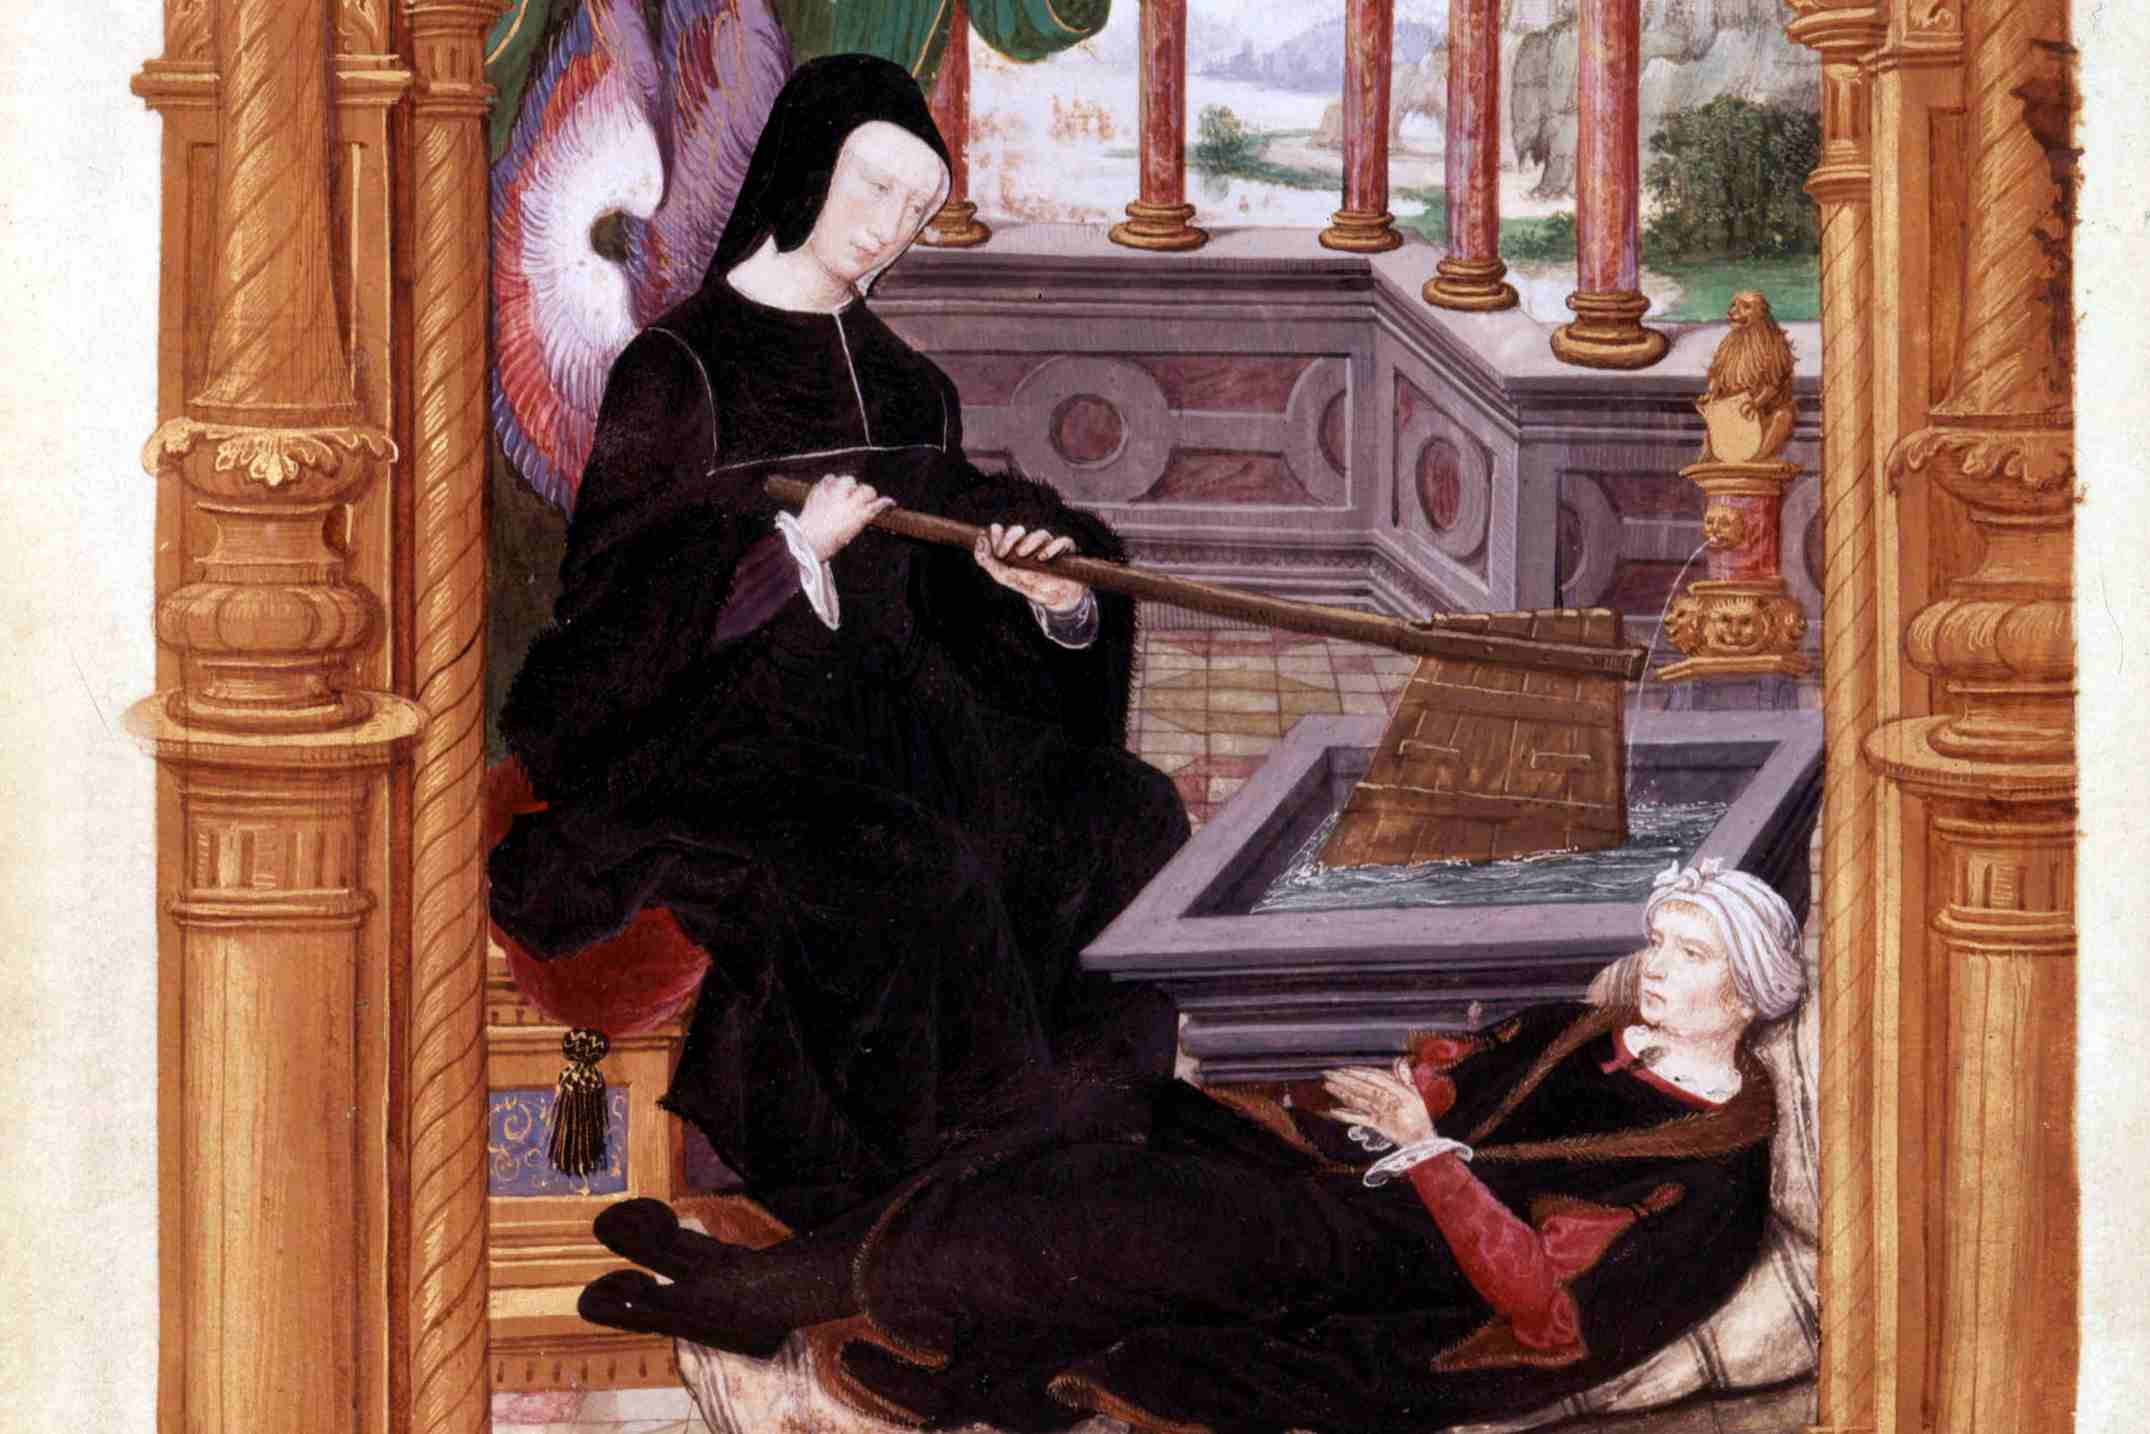 Louise of Savoy, depicted with her firm hand on the tiller of the Kingdom of France